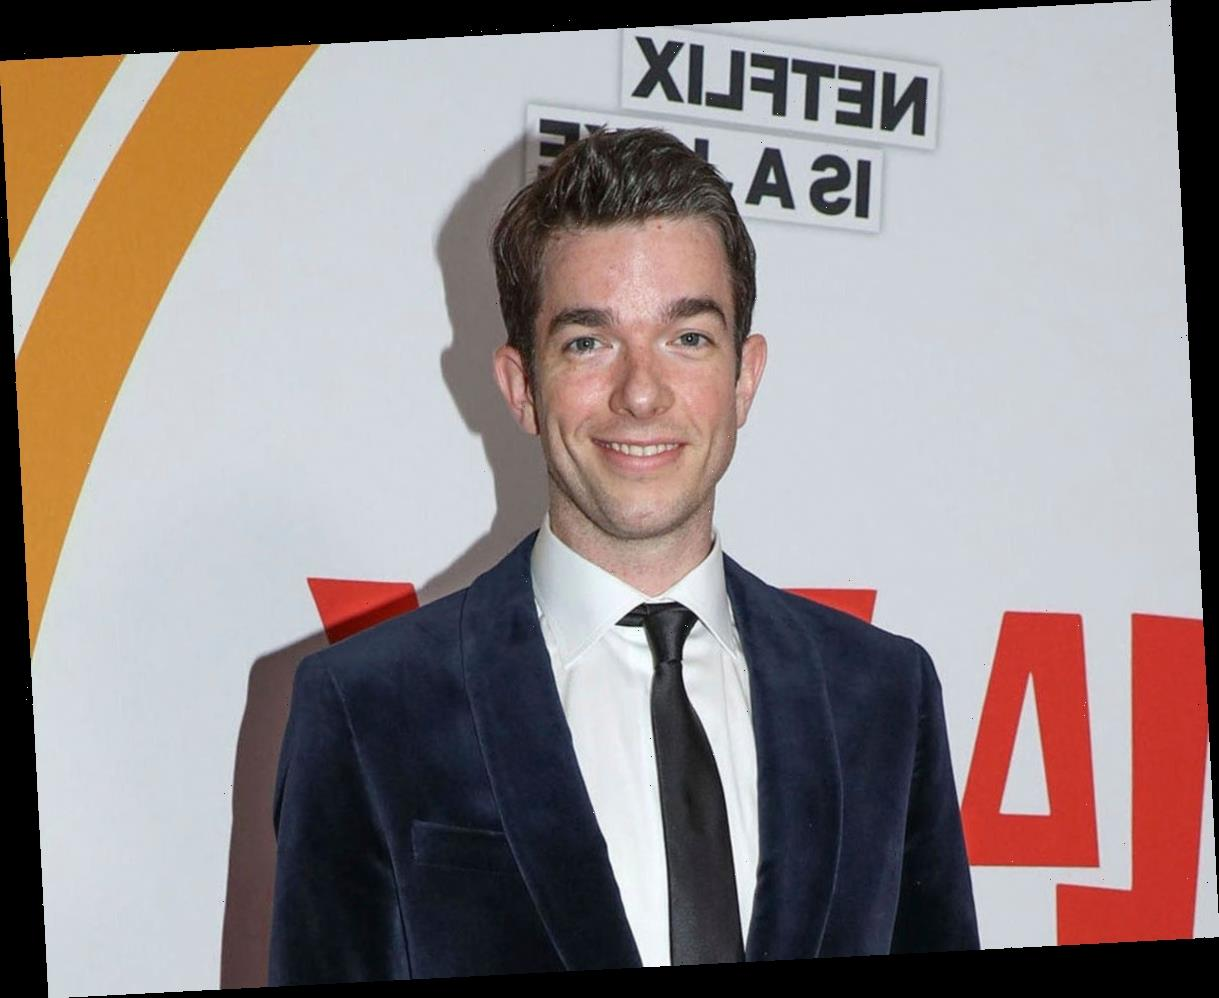 Secret Service File Details Investigation Into John Mulaney 'SNL' Monologue